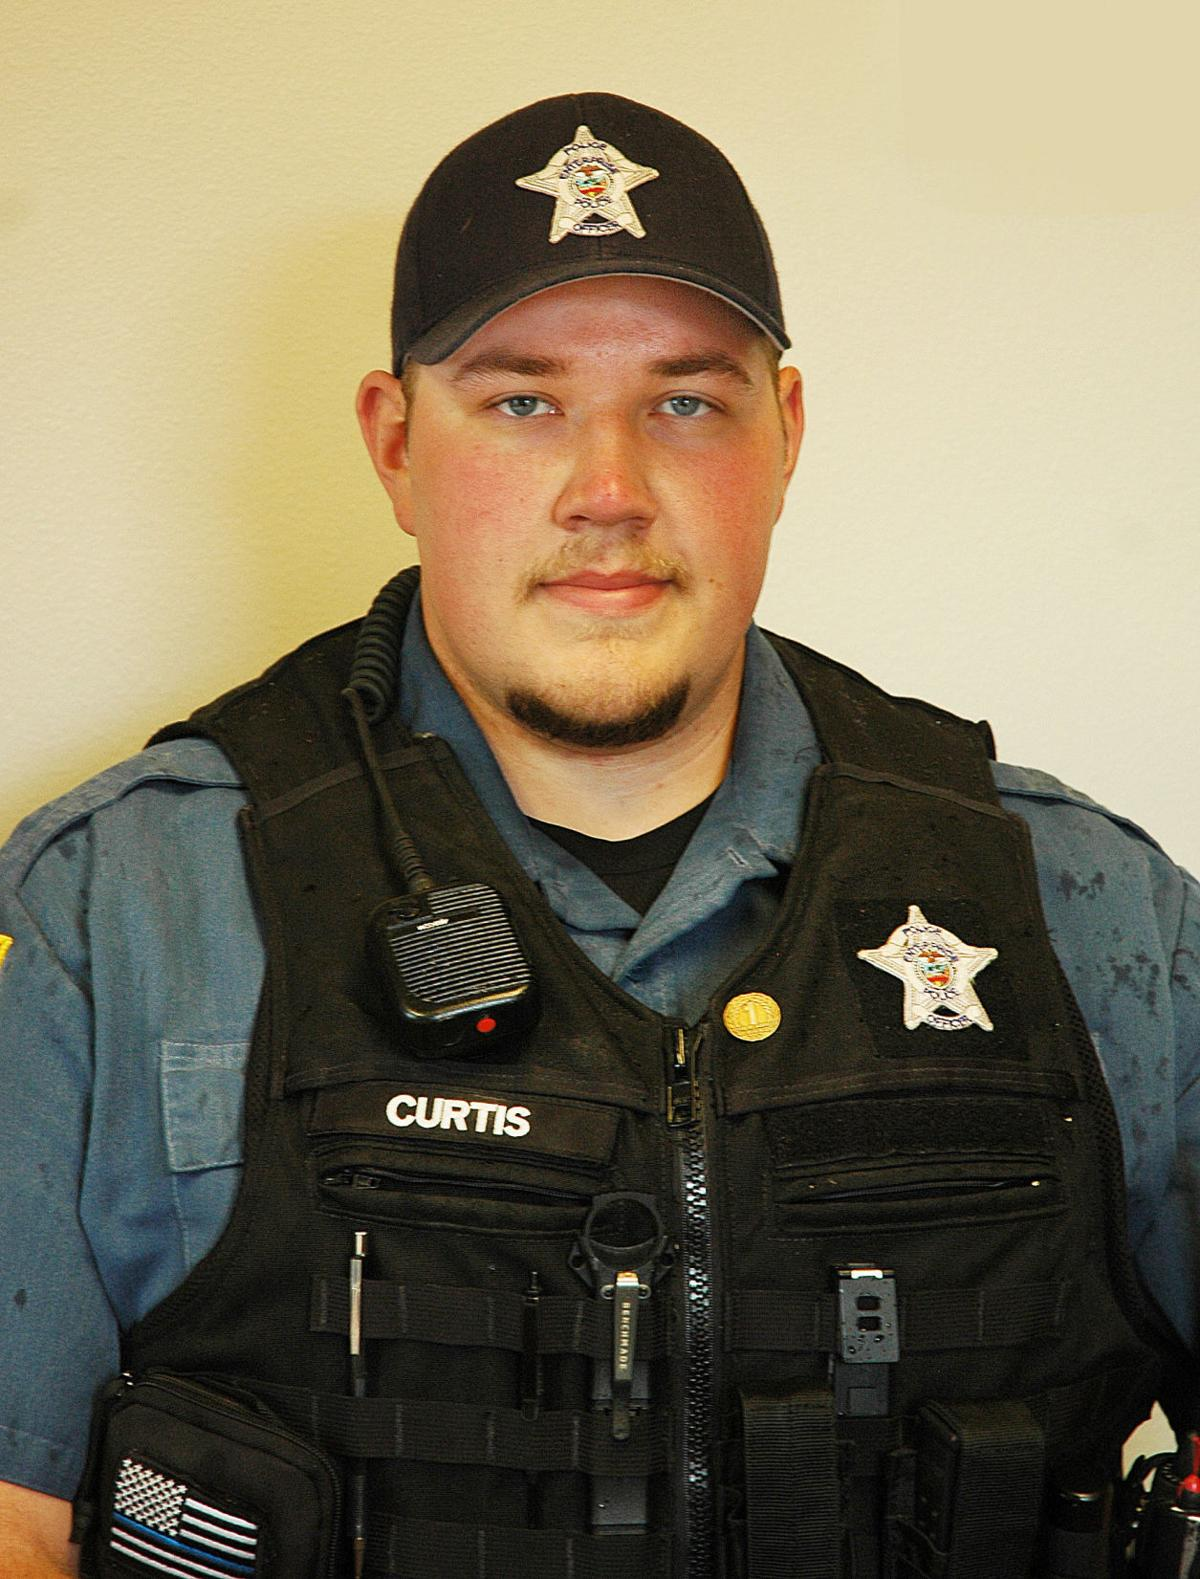 One year down: EPD chief settling in